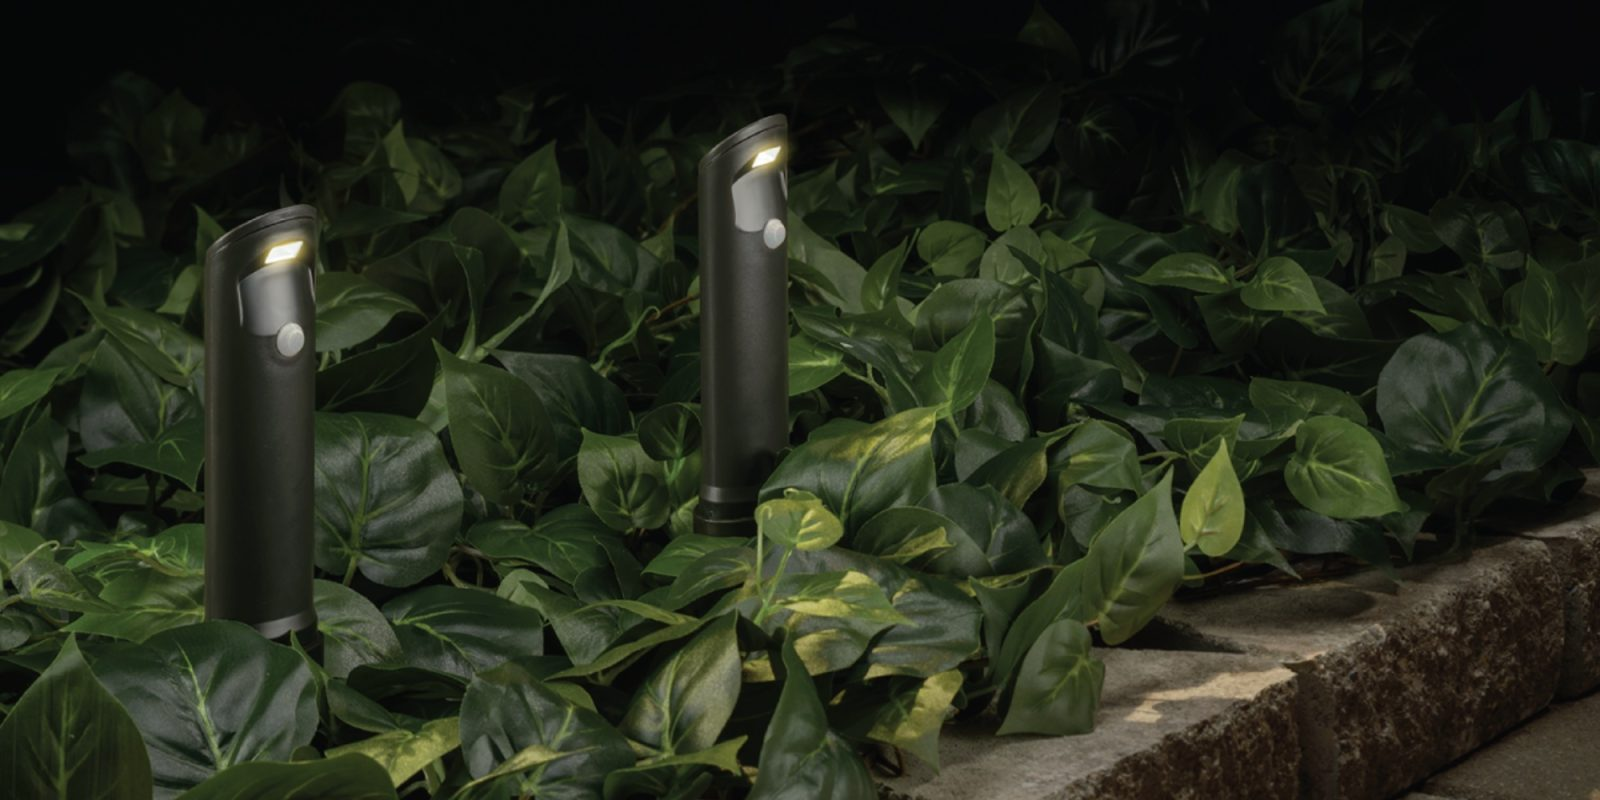 Mr. Beams' wireless LED path light is motion-sensing for $8.50 each (2019 low)